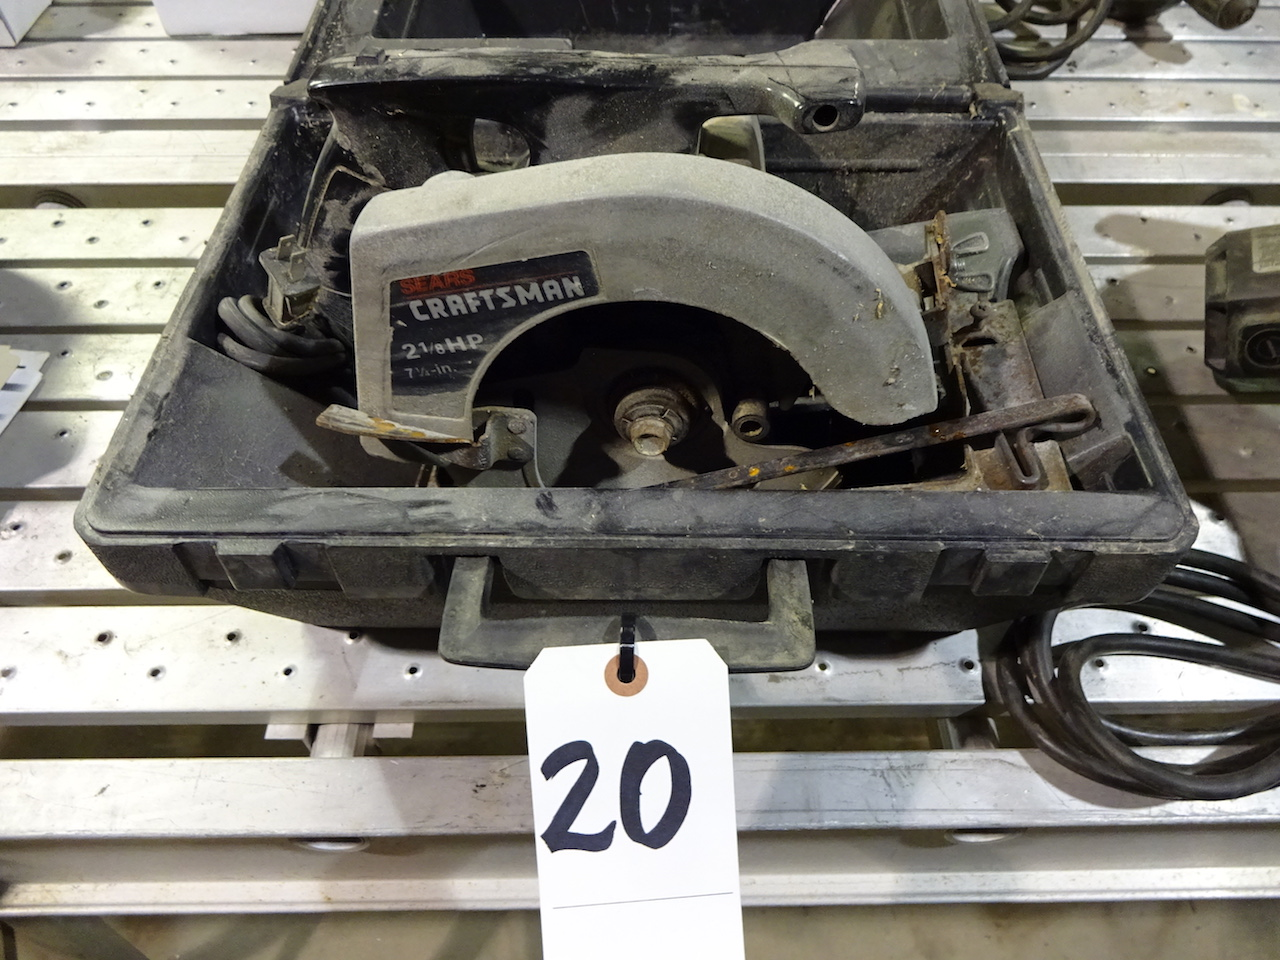 Lot 20 - Craftsman 2.5 HP 7-1/4 in. Circular Saw